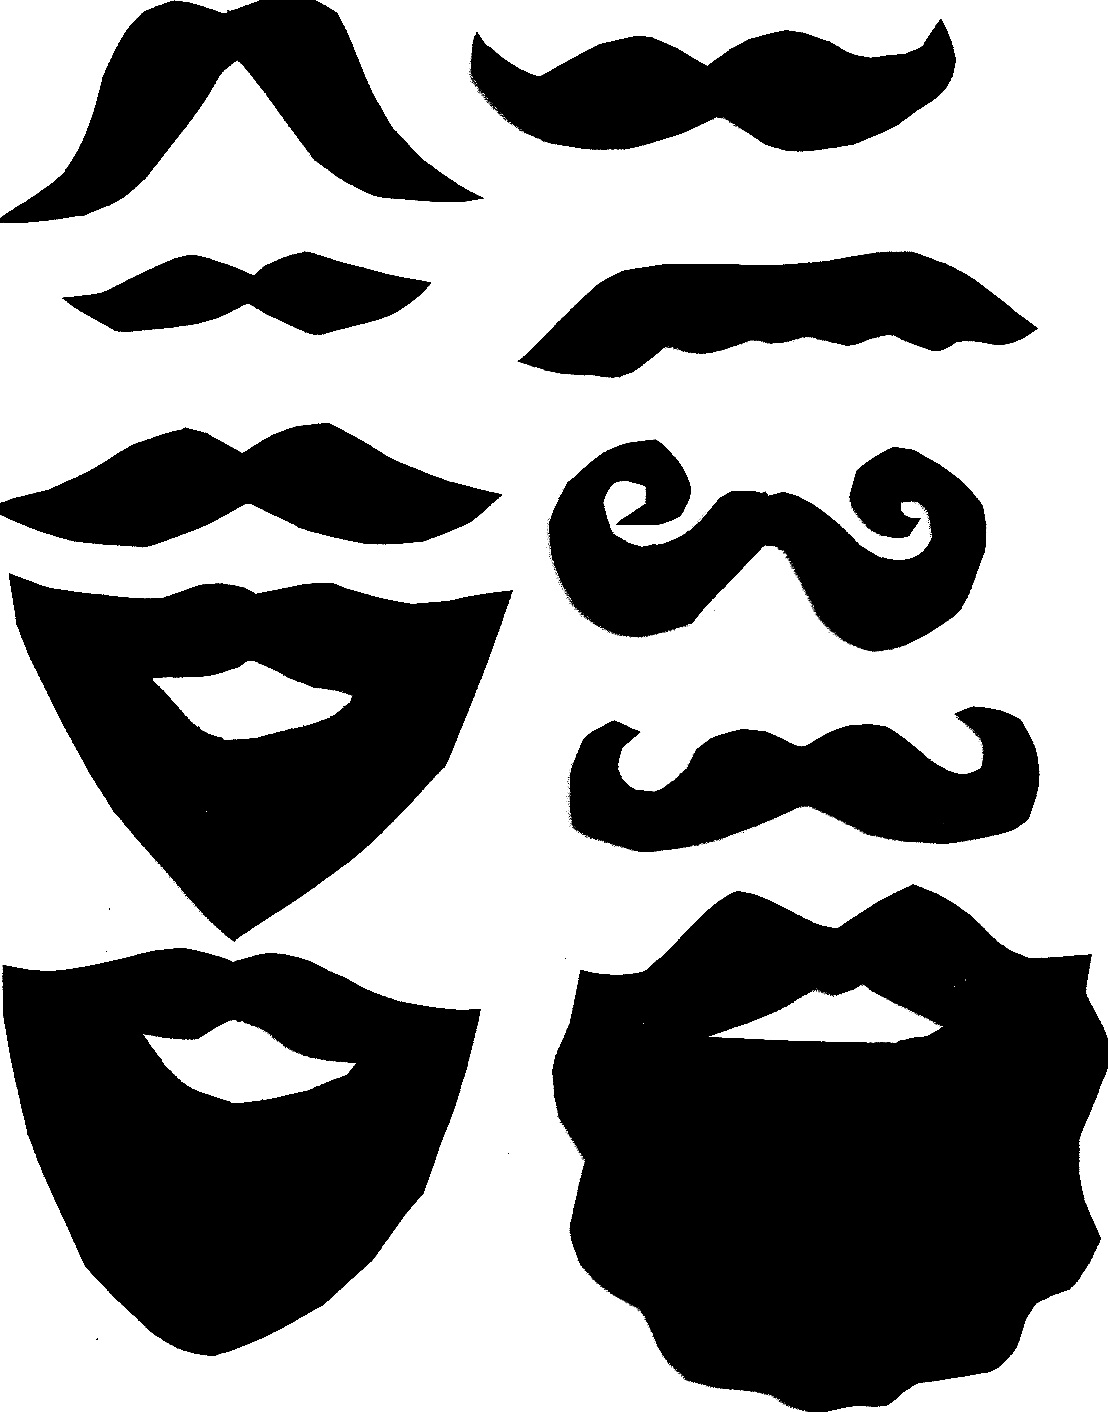 Printables clipart png freeuse Mustache Printables Clipart - Clipart Kid png freeuse